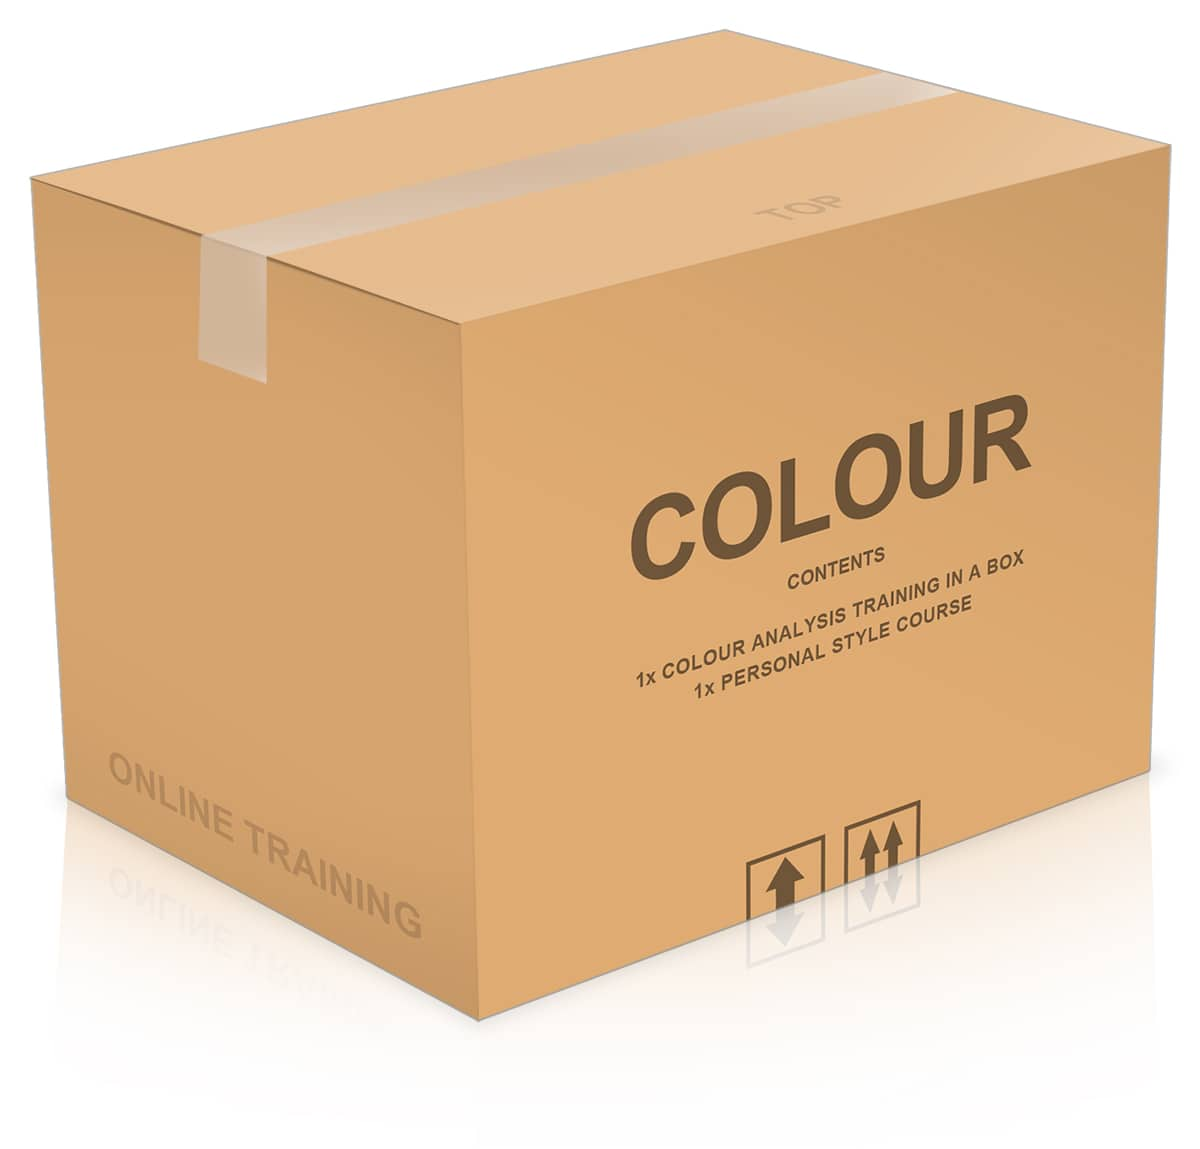 colour analysis training special offer